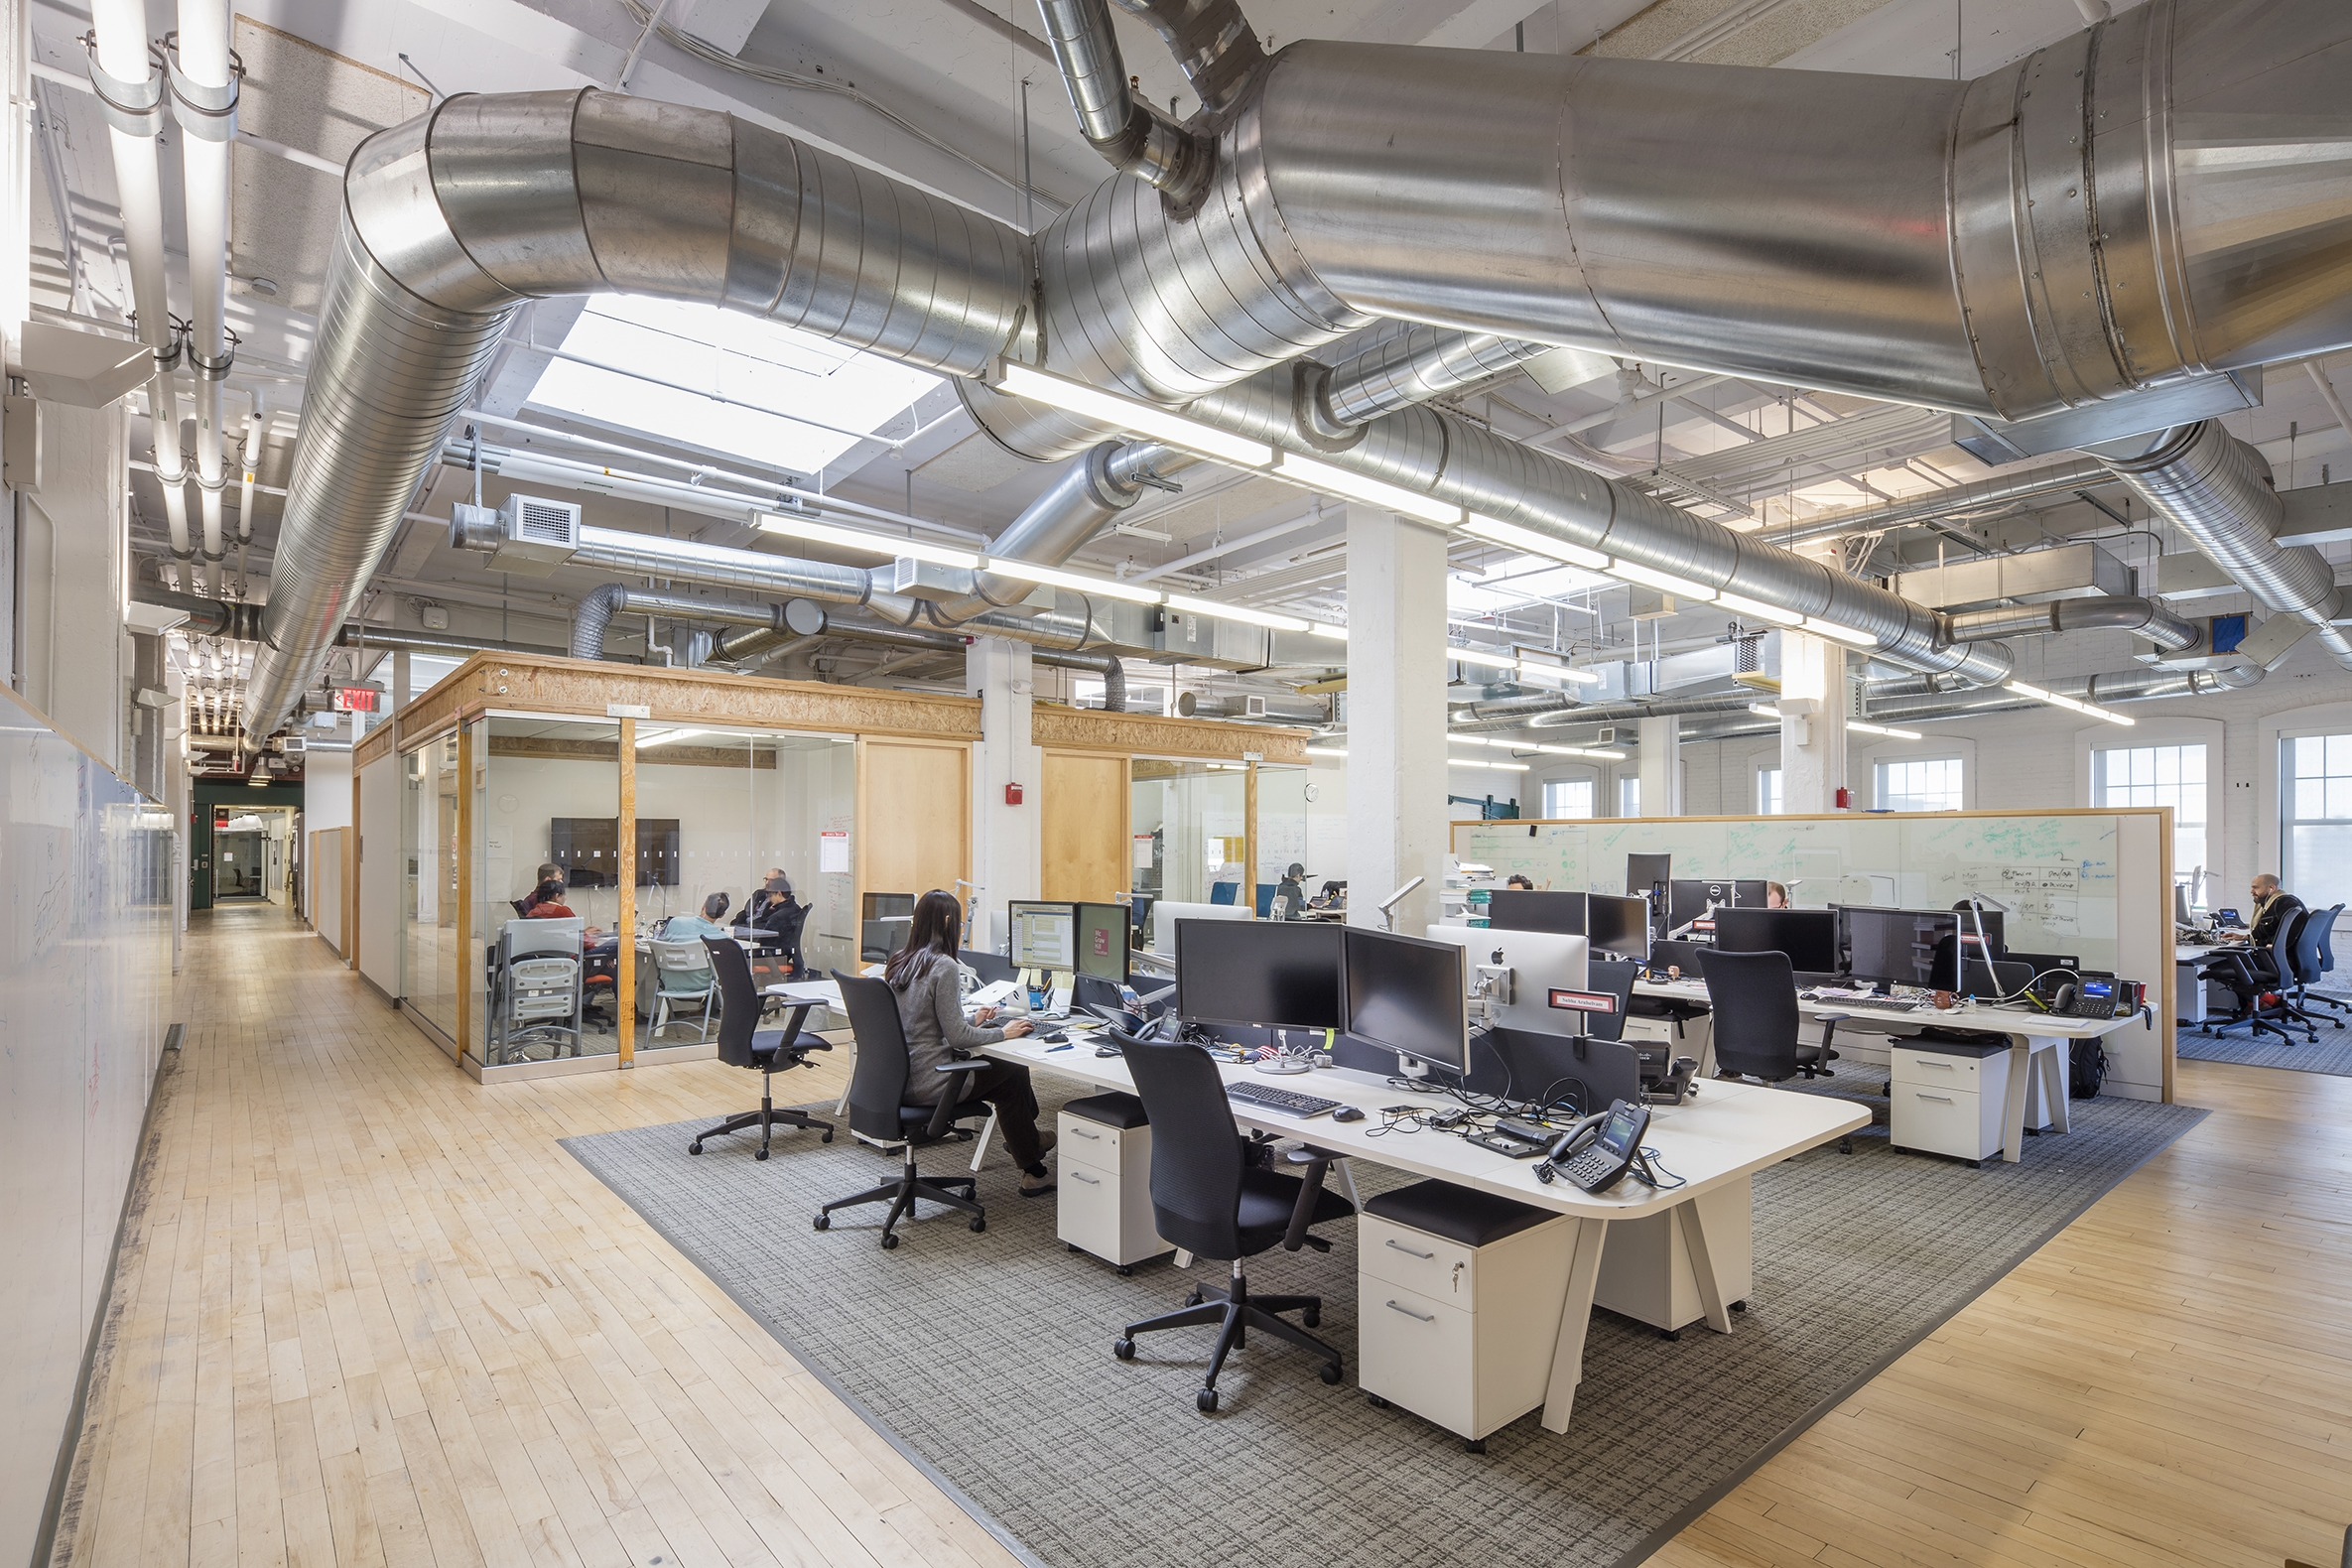 MHE-I-Open-Officesm McGraw-Hill Education Offices